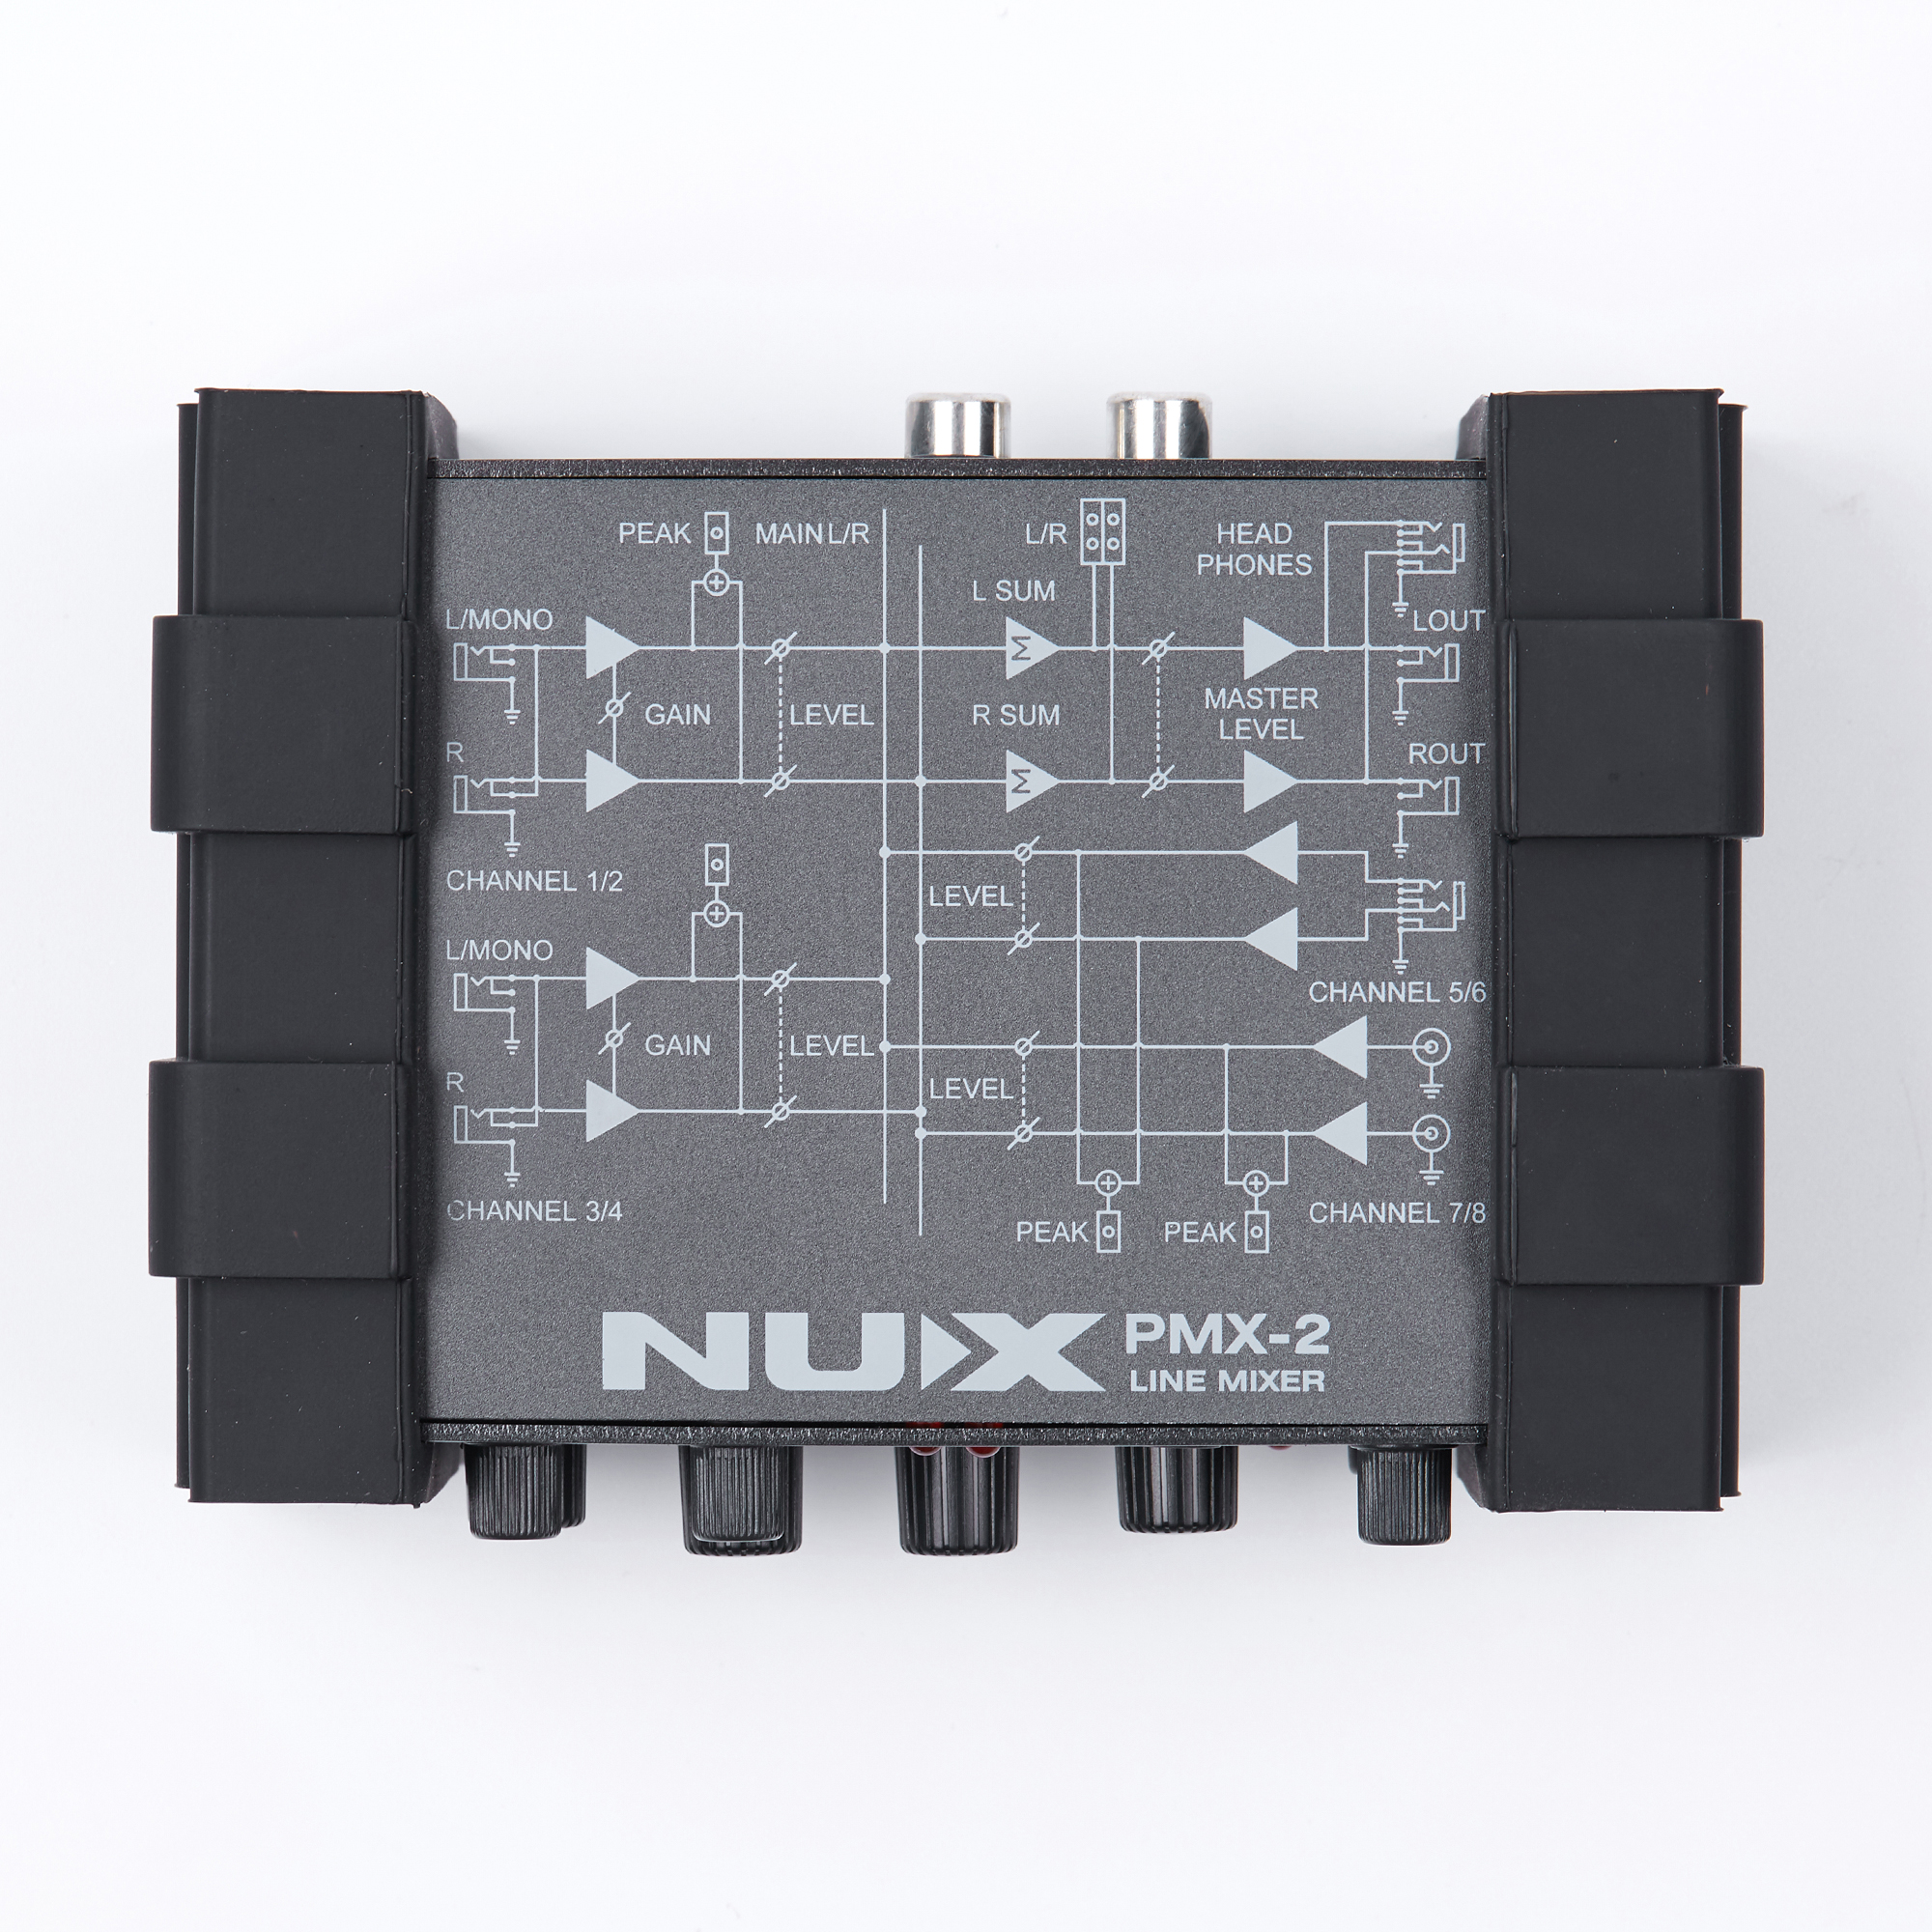 Gain Control 8 Inputs and 2 Outputs NUX PMX-2 Multi-Channel Mini Mixer 30 Musical Instruments Accessories for Guitar Bass Player свитшот print bar music is life